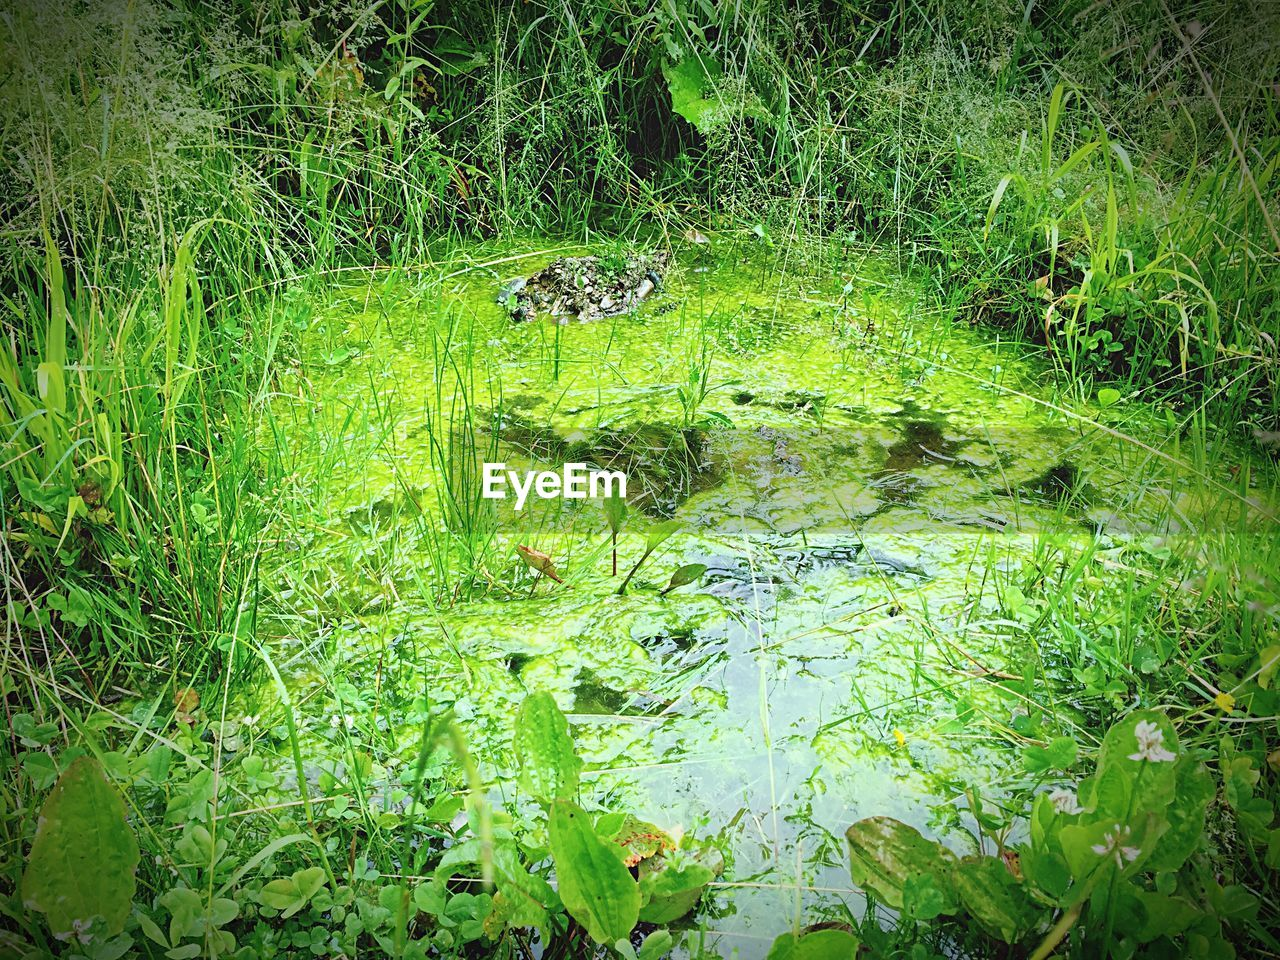 animal themes, animals in the wild, green color, nature, water, grass, growth, floating on water, no people, swamp, one animal, outdoors, day, lake, reptile, algae, water plant, swimming, animal wildlife, alligator, plant, forest, beauty in nature, lily pad